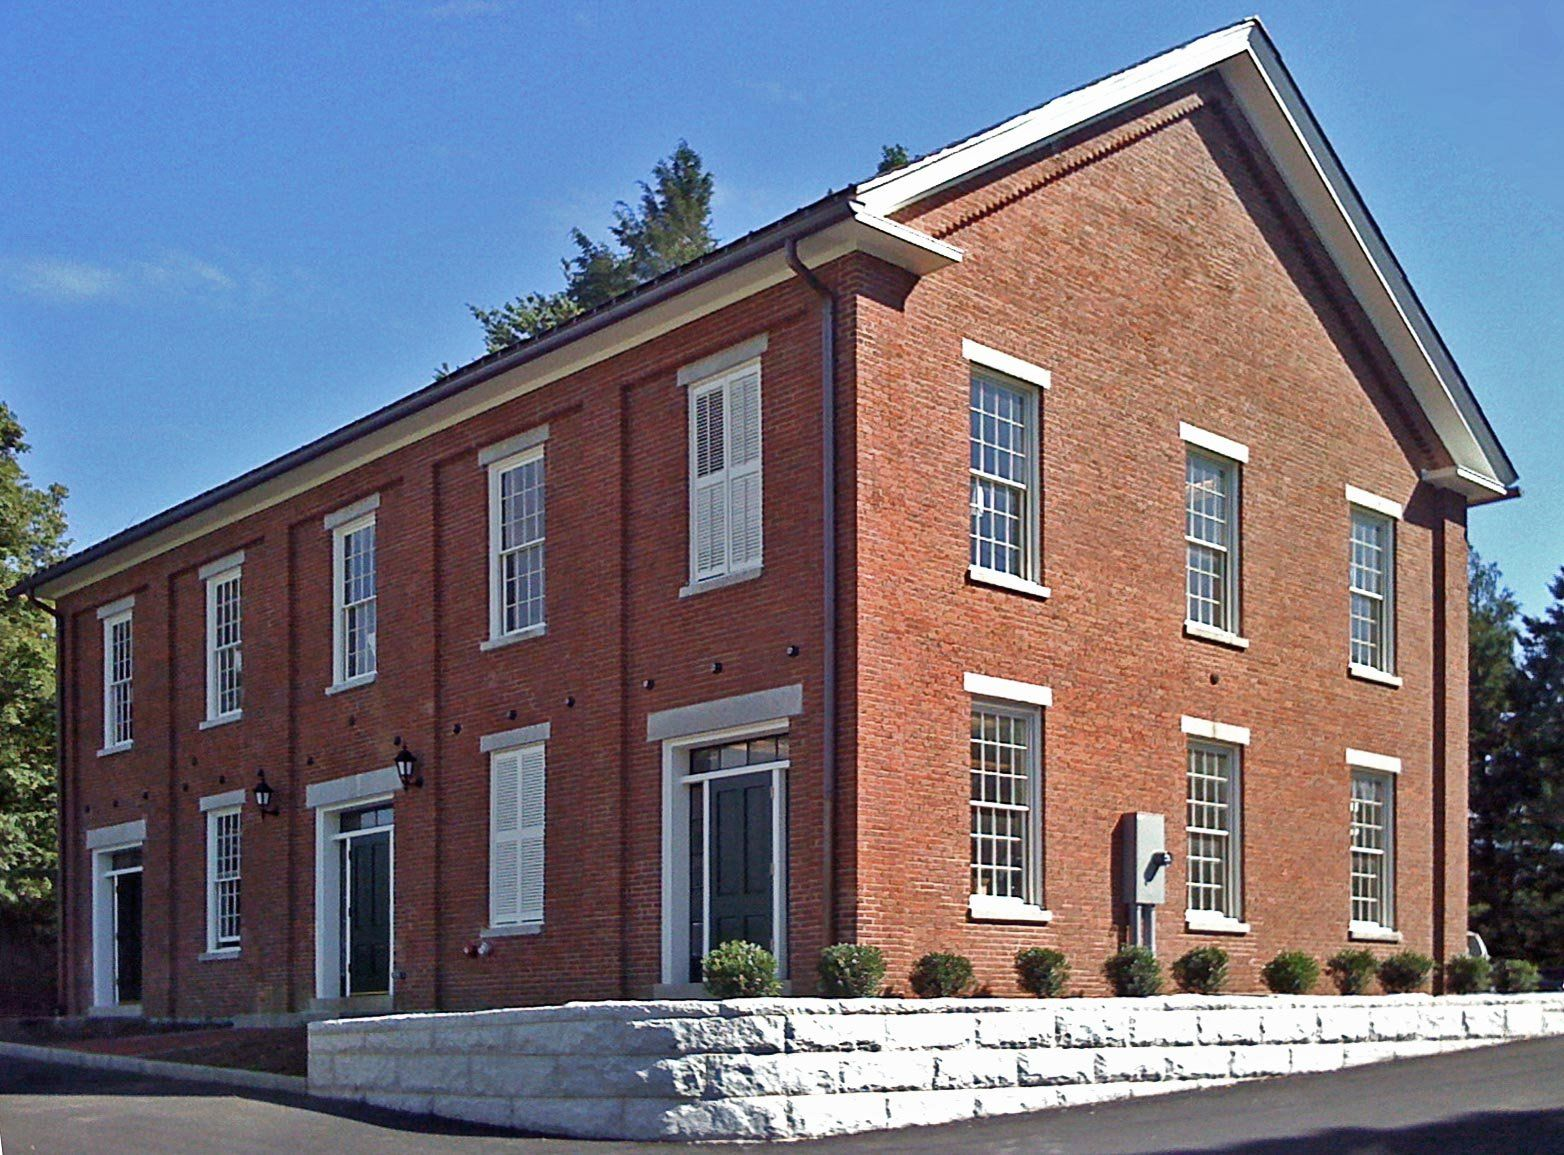 Sturbridge Town Hall and Center Office Building